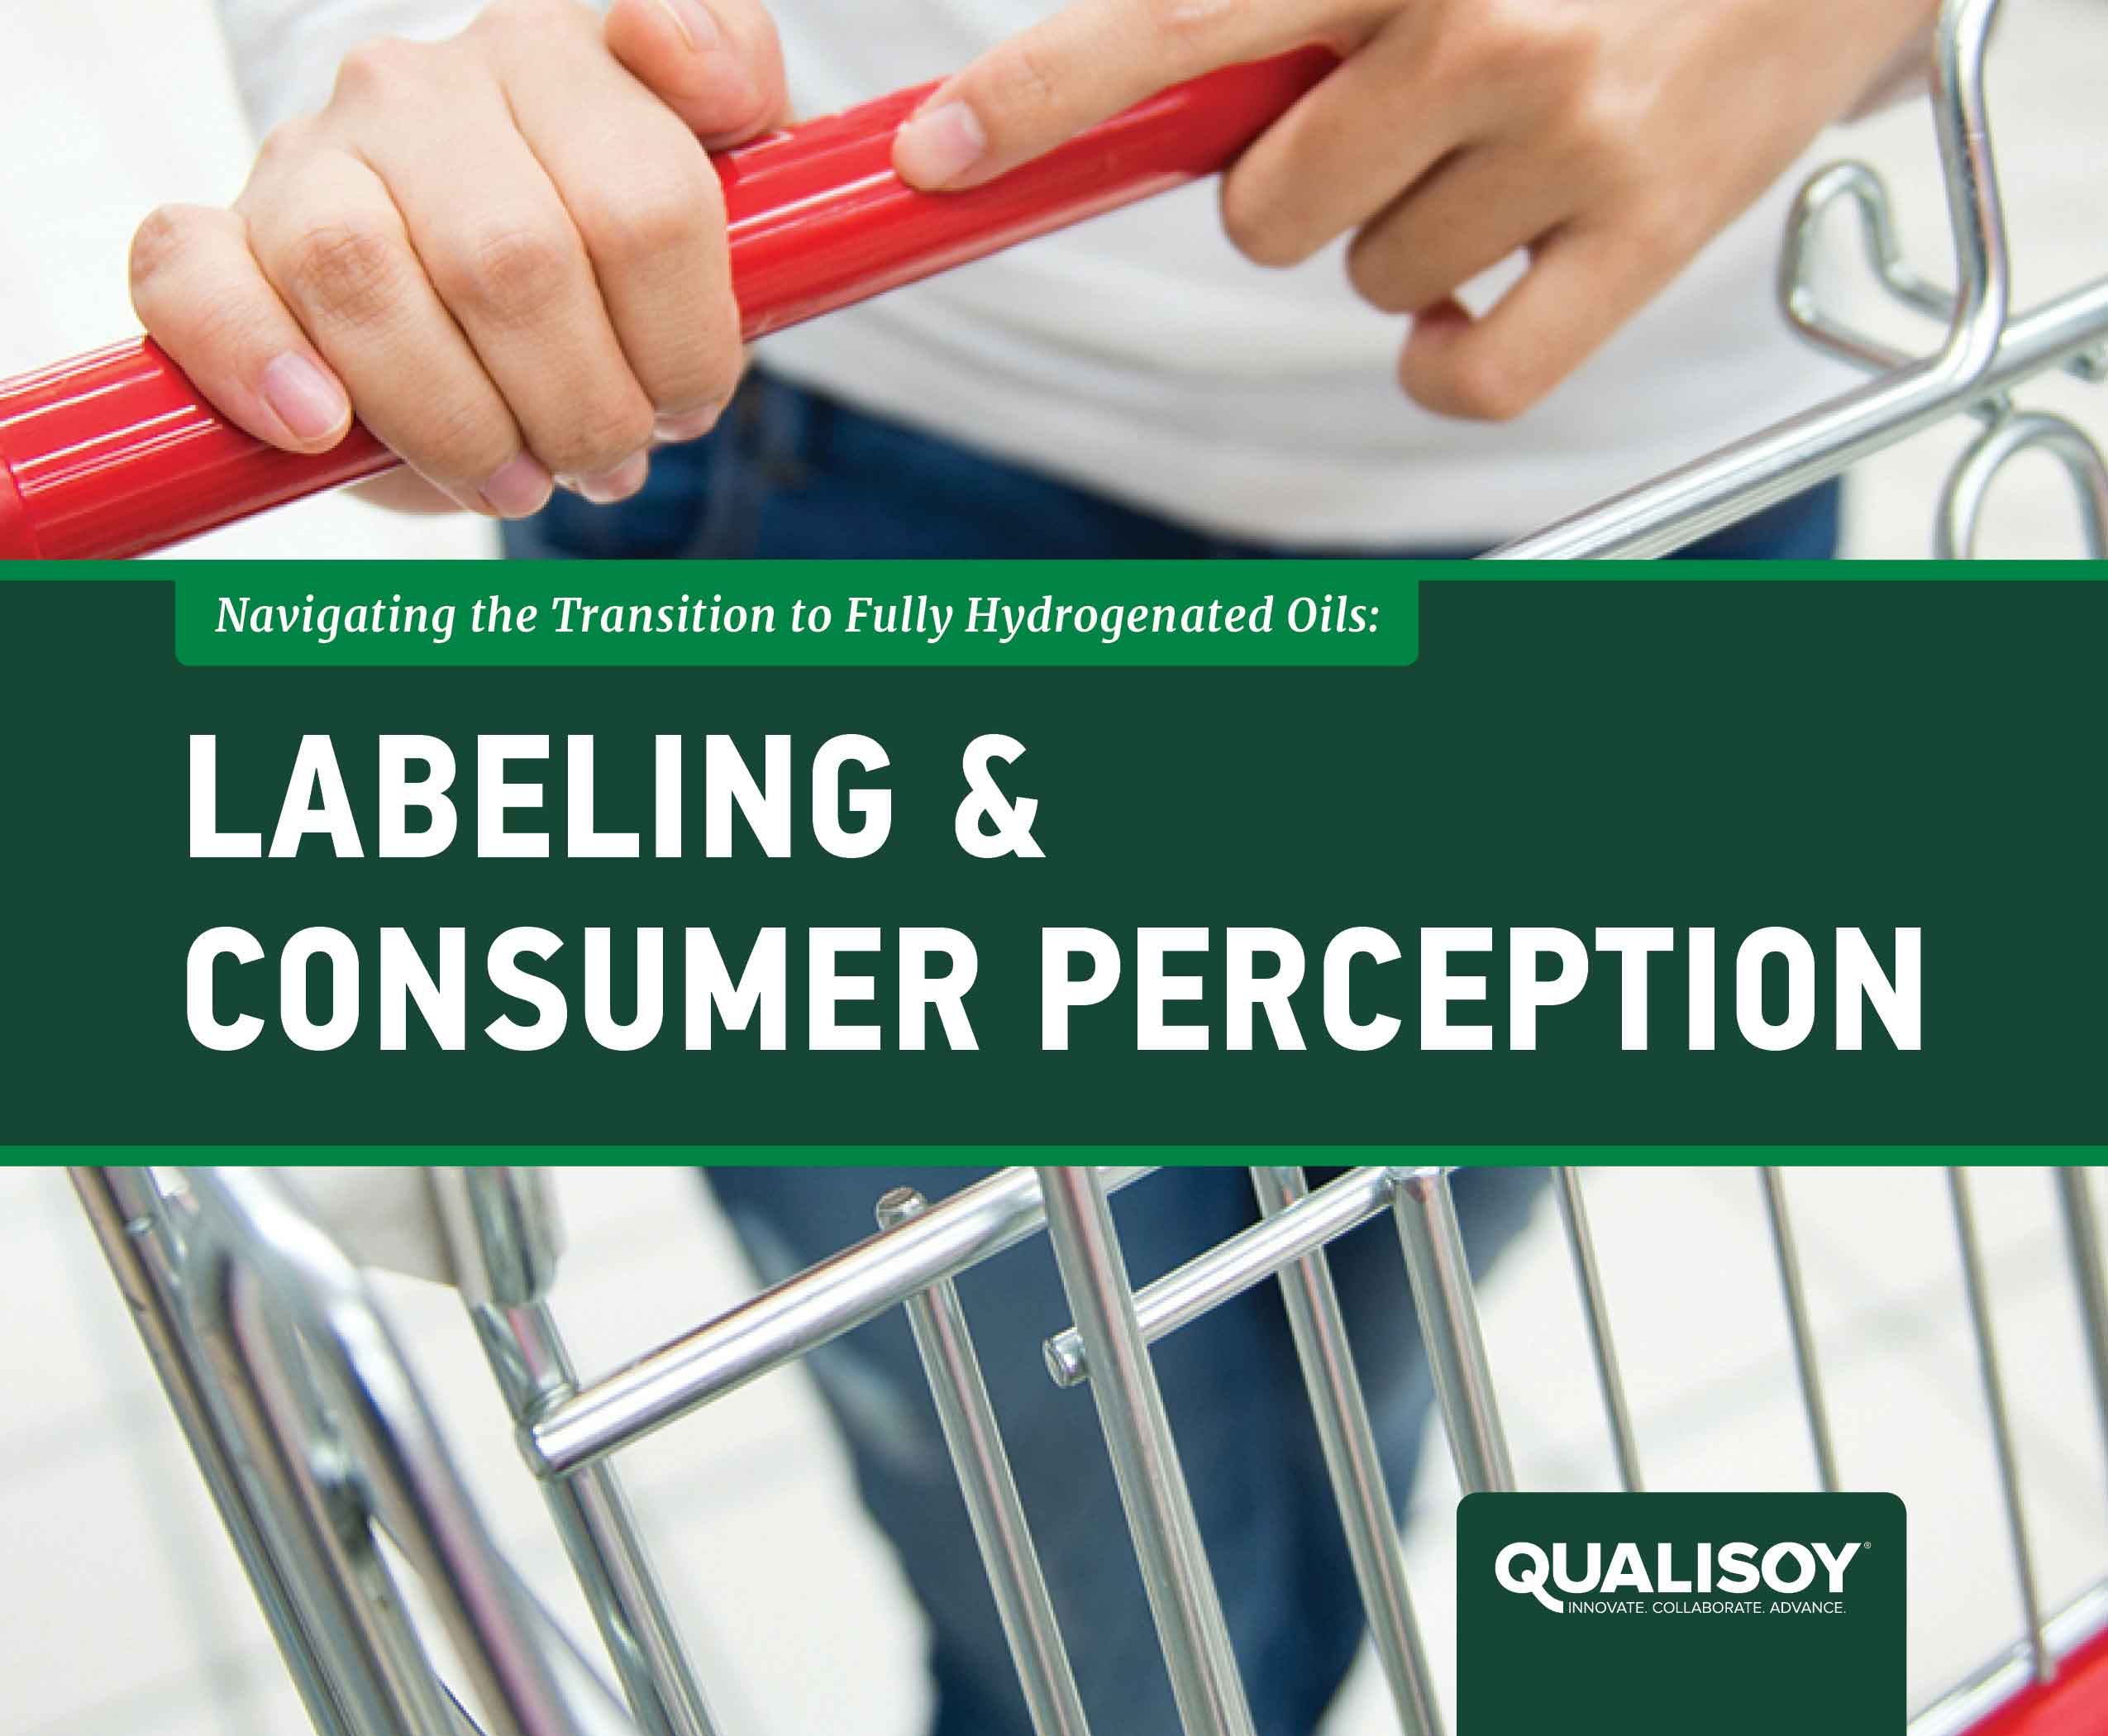 Navigating the Transition to Fully Hydrogenated Oils: Labeling & Consumer Perception